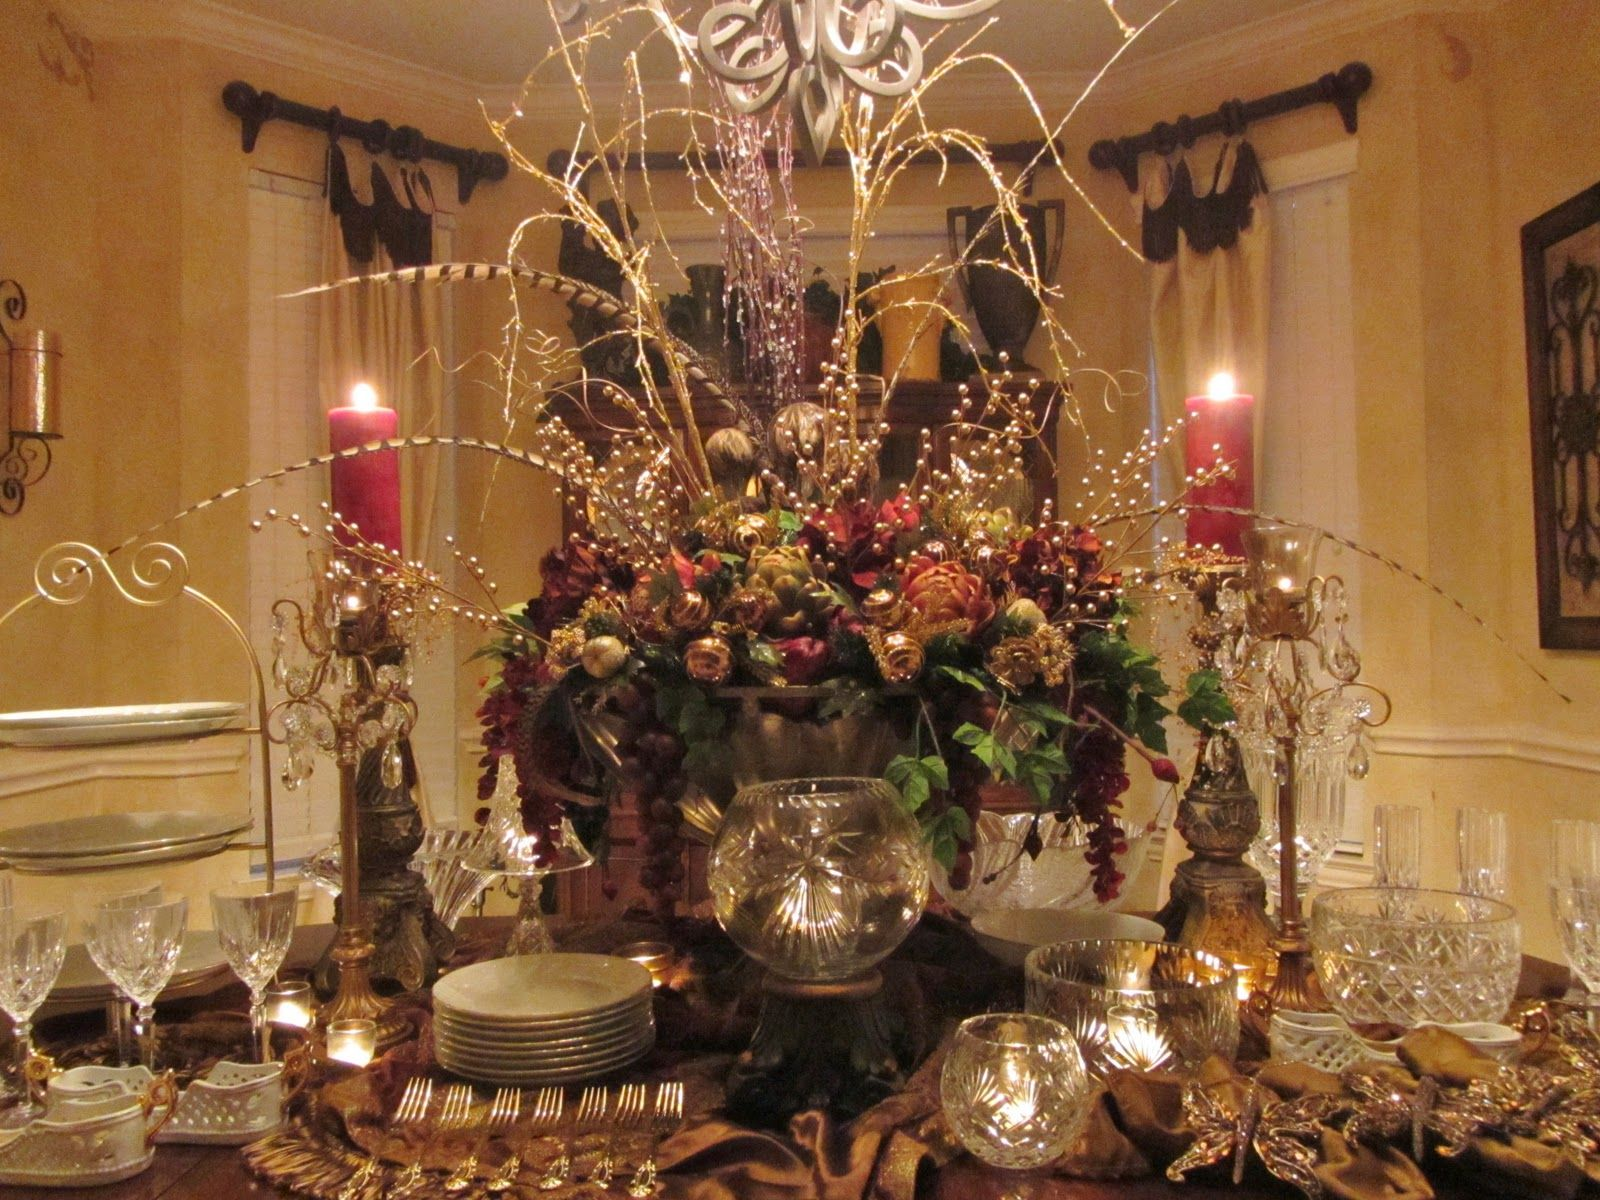 buffet table setting pics and suggestions: divine dinner, hosting